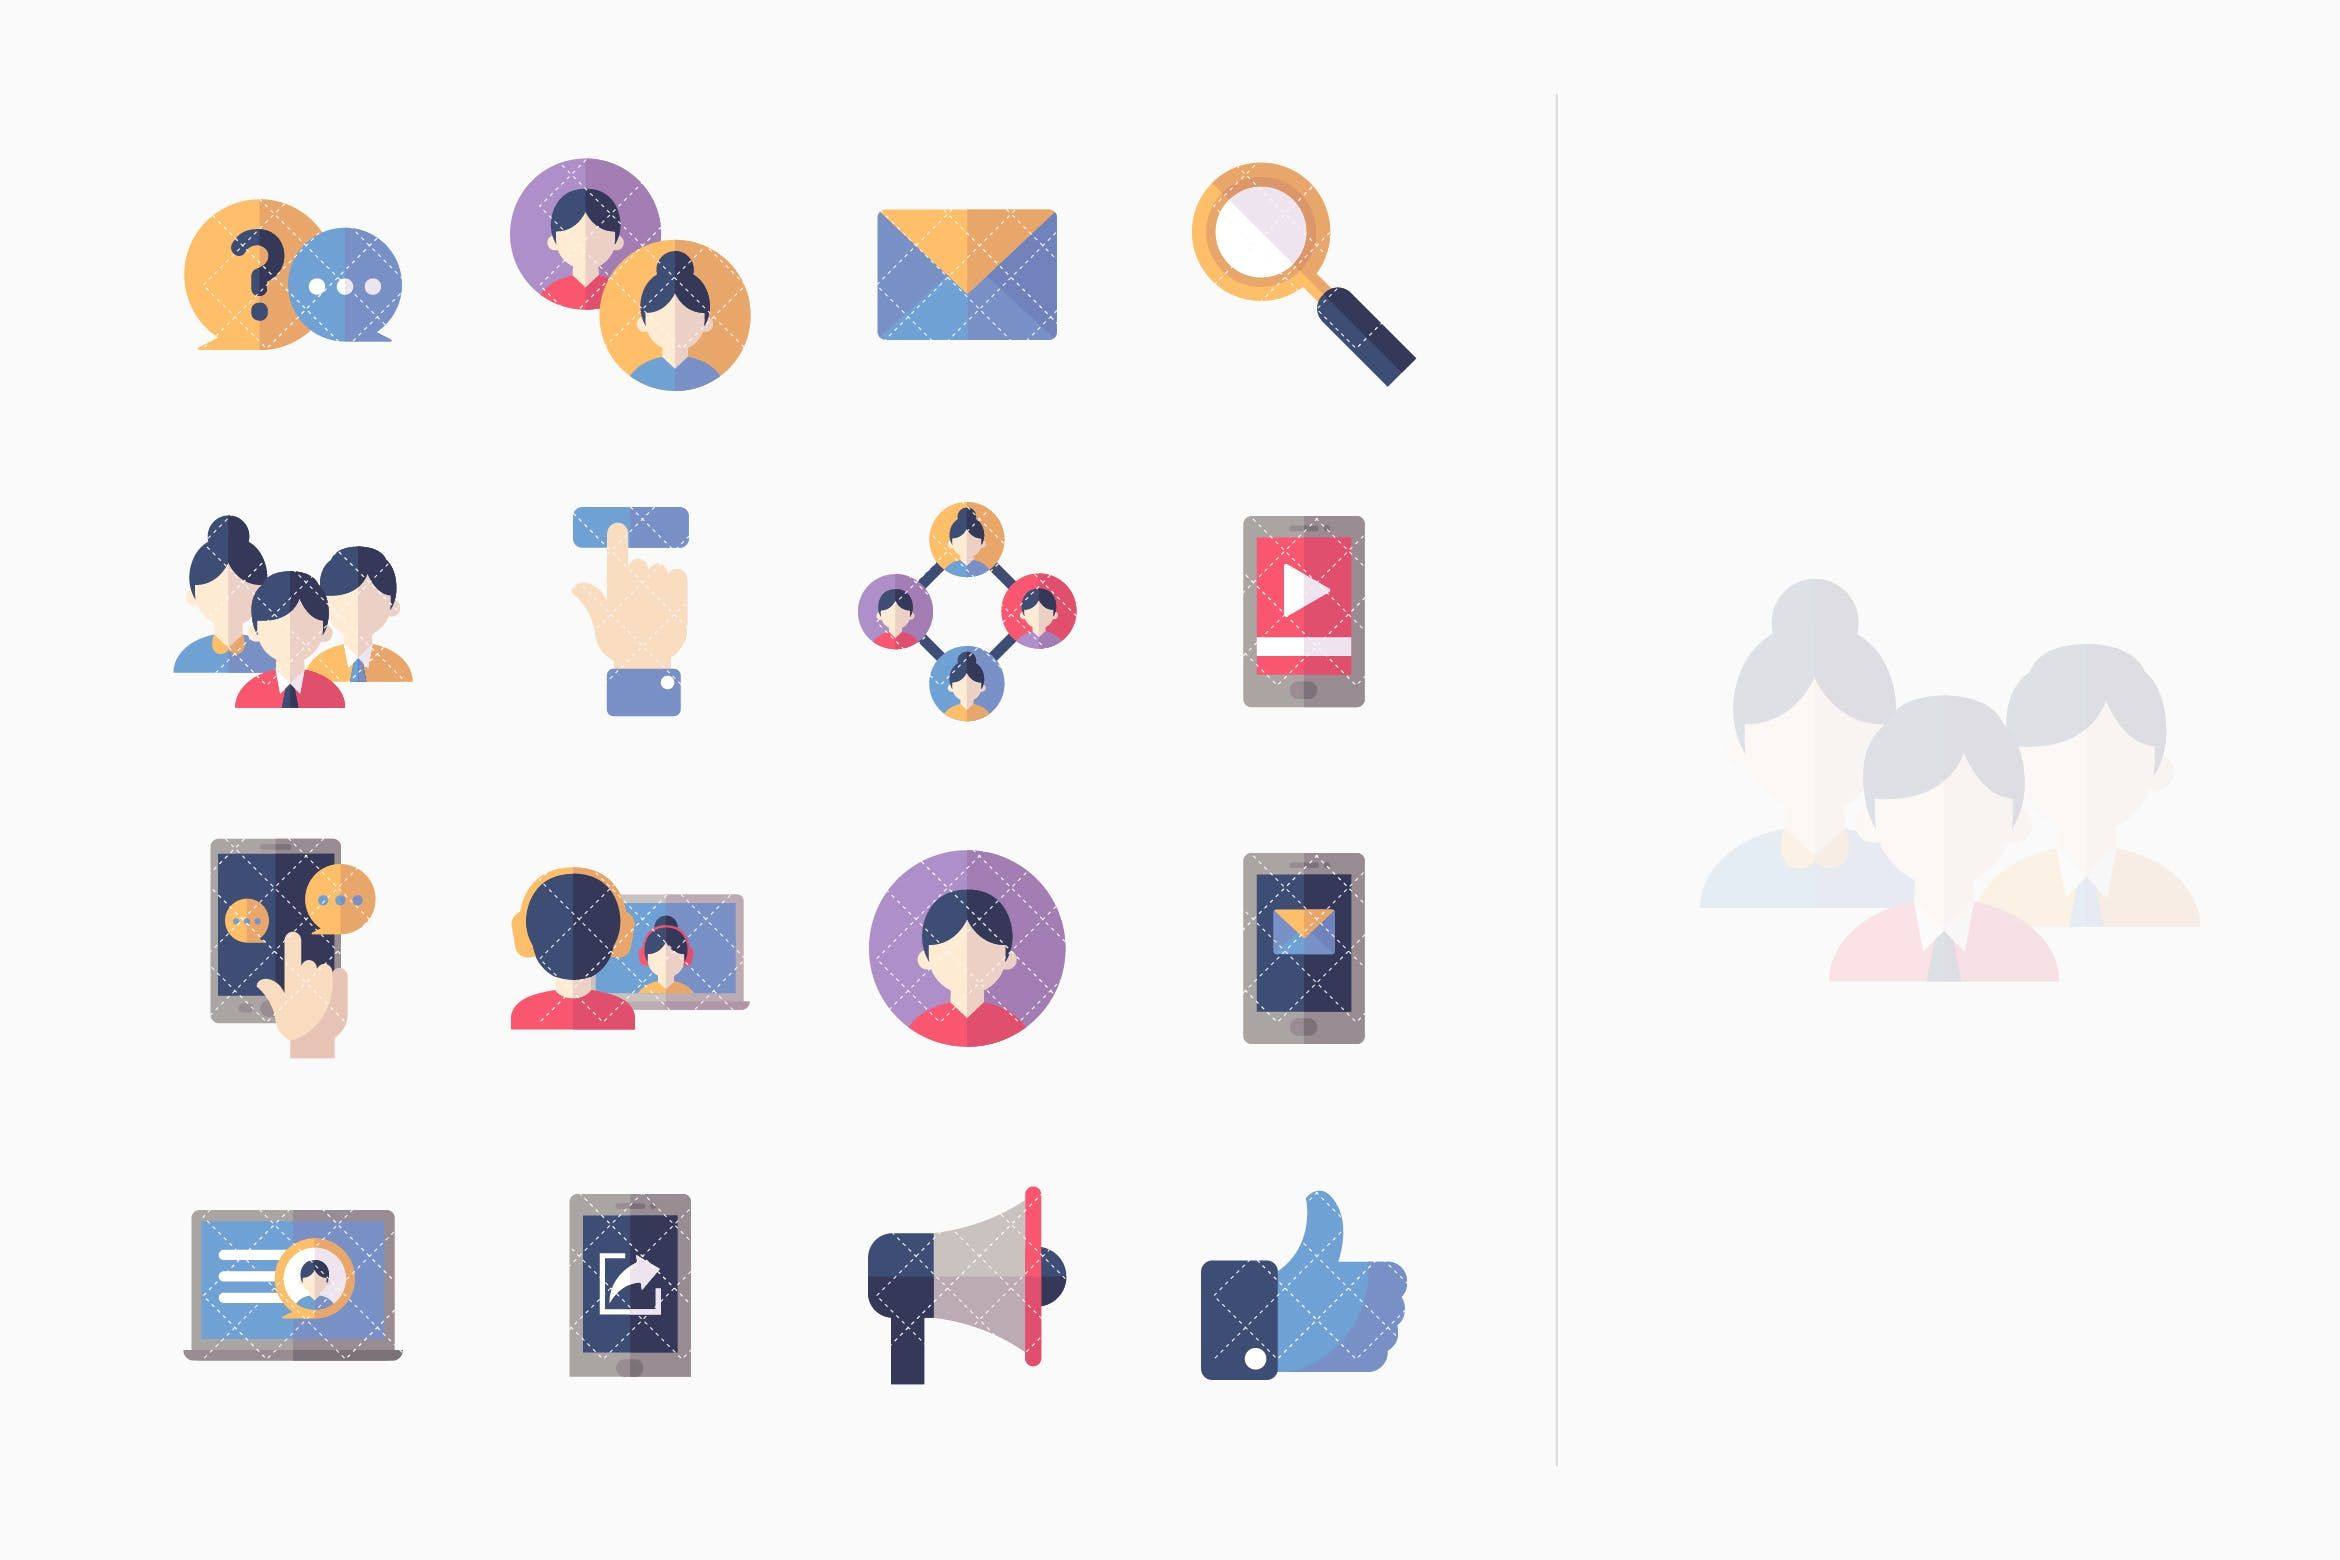 Social Media Icons Set 1 Flat Series by introwiz1 on